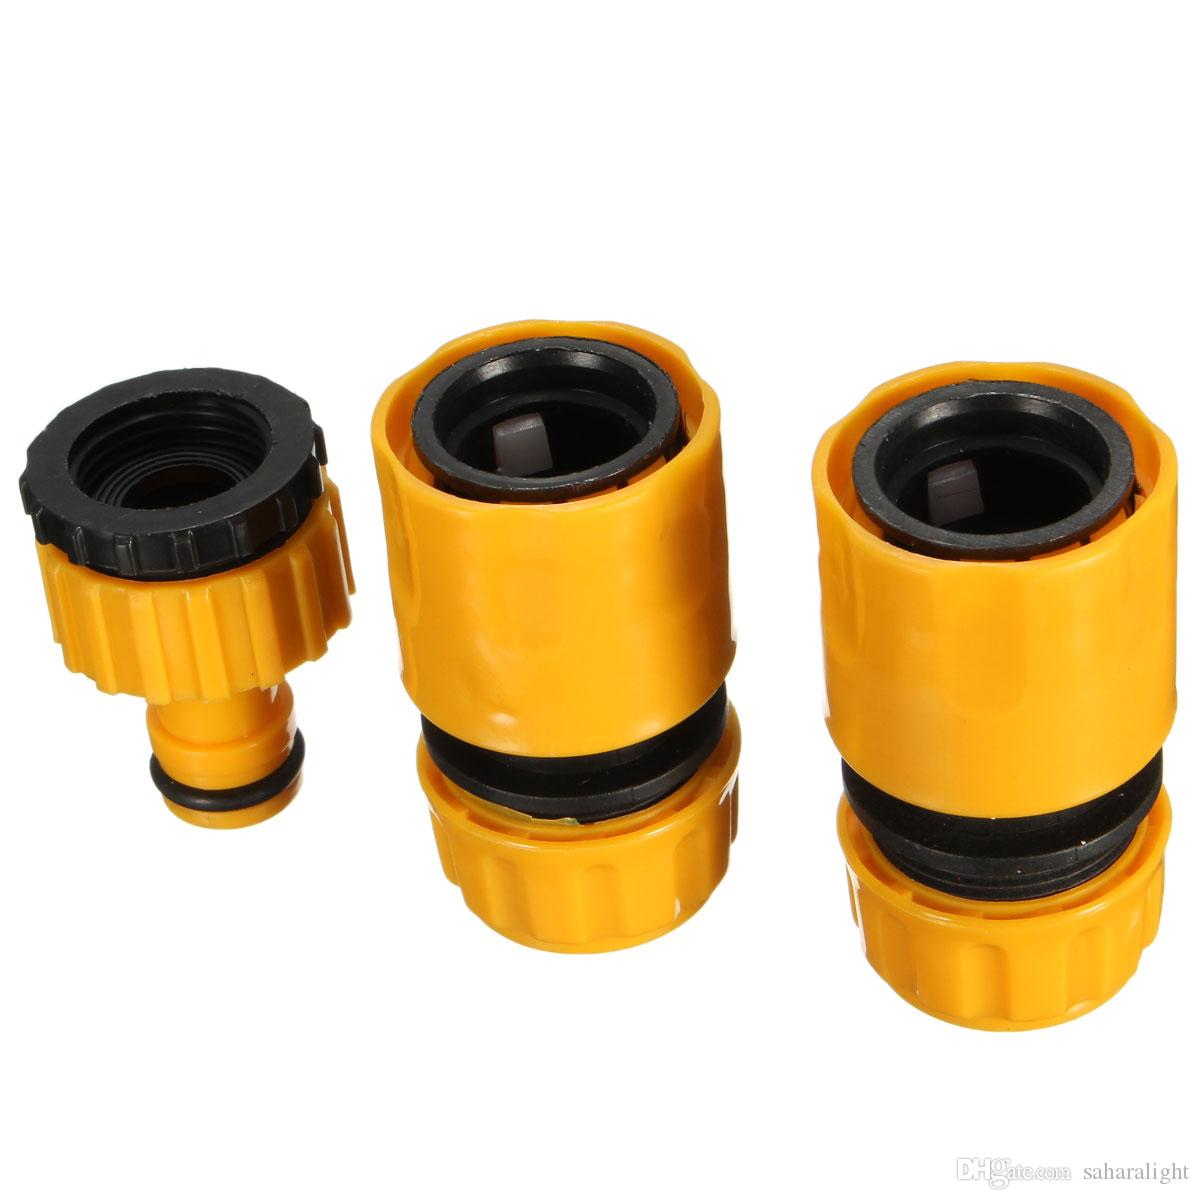 "2016 New Useful 1/2"" 3/4'' Hose Pipe Fitting Set Quick Yellow Water Connector Adaptor Garden Lawn Tap"